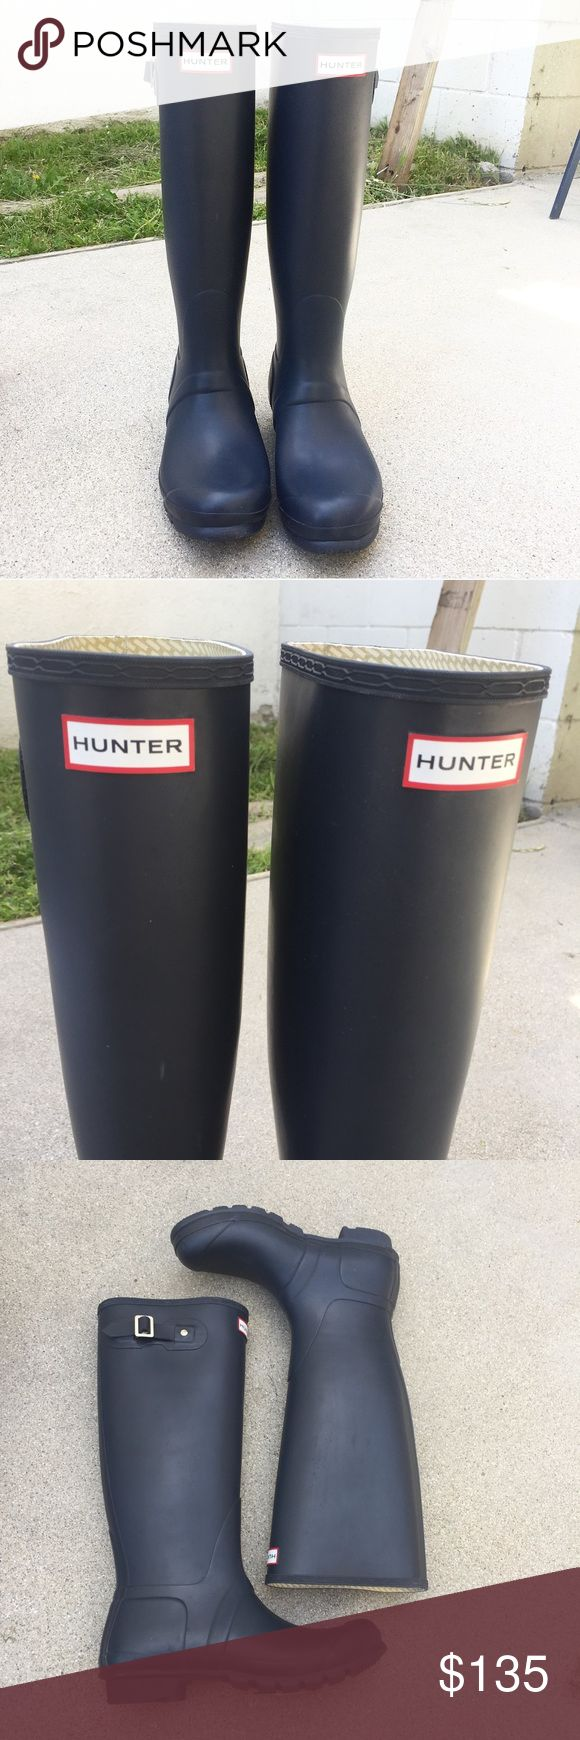 Hunter Matte Navy Rain Boots Welly Tall Size 10. New without box. There are some scratches but never worn! Hunter Shoes Winter & Rain Boots